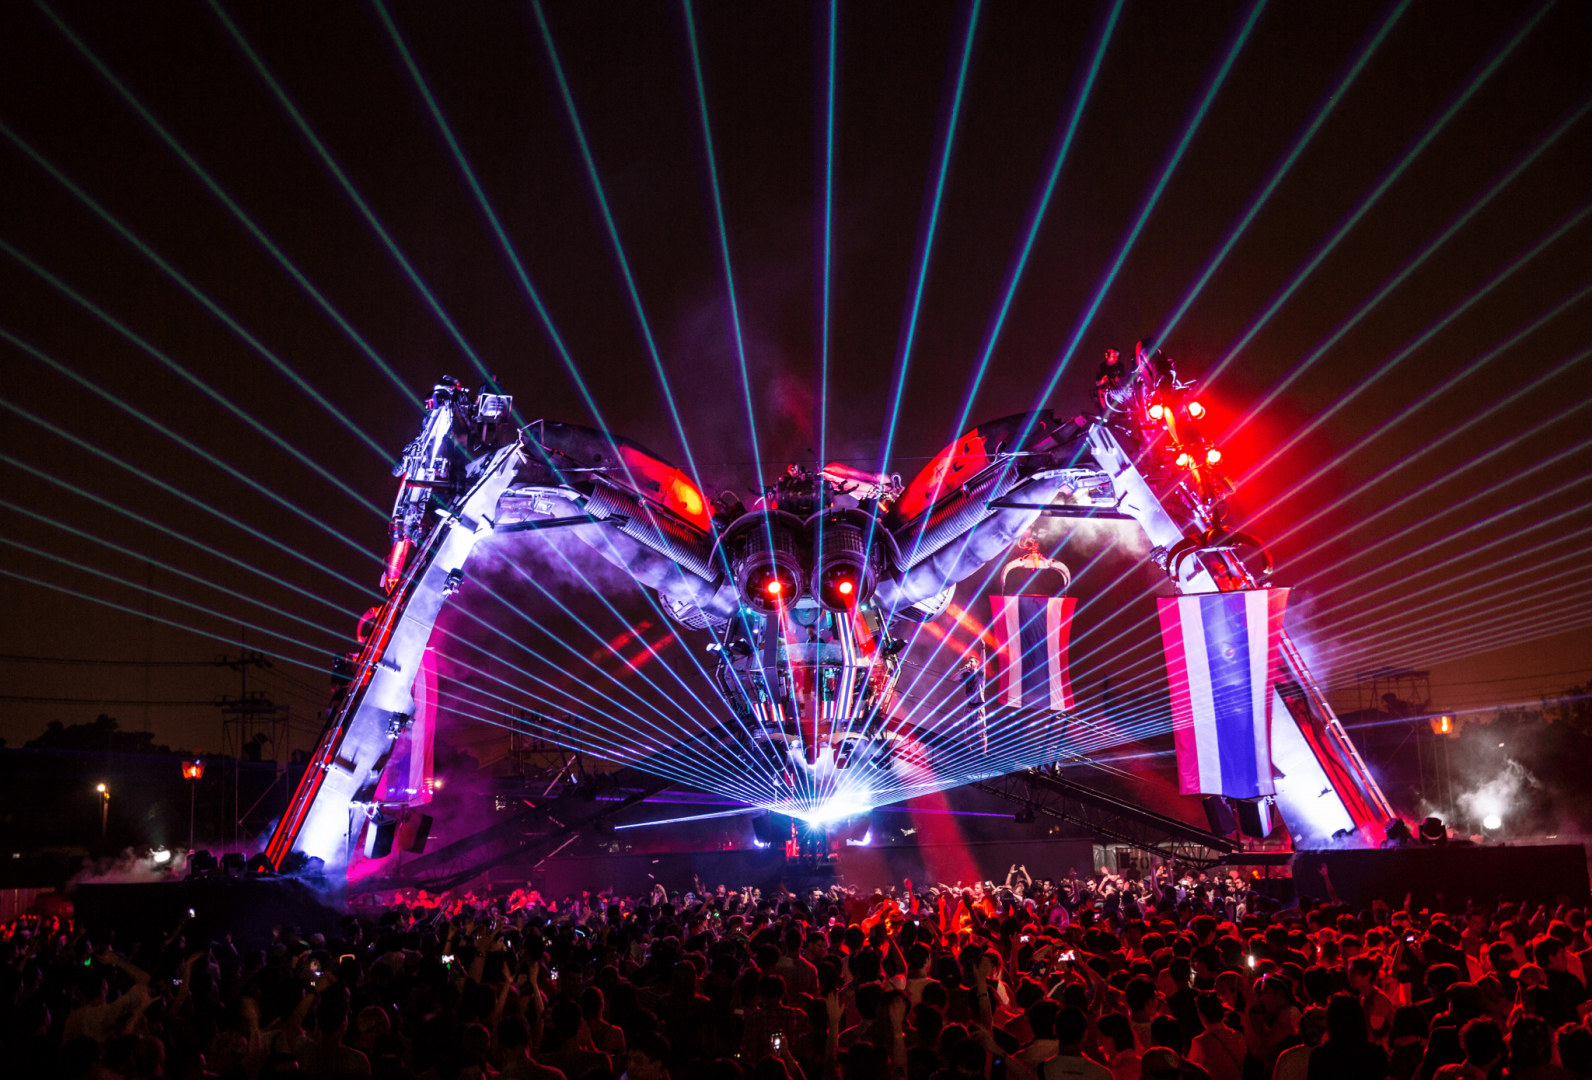 Arcadia' are planning big things for The Spider at Glastonbury this year – Loaded